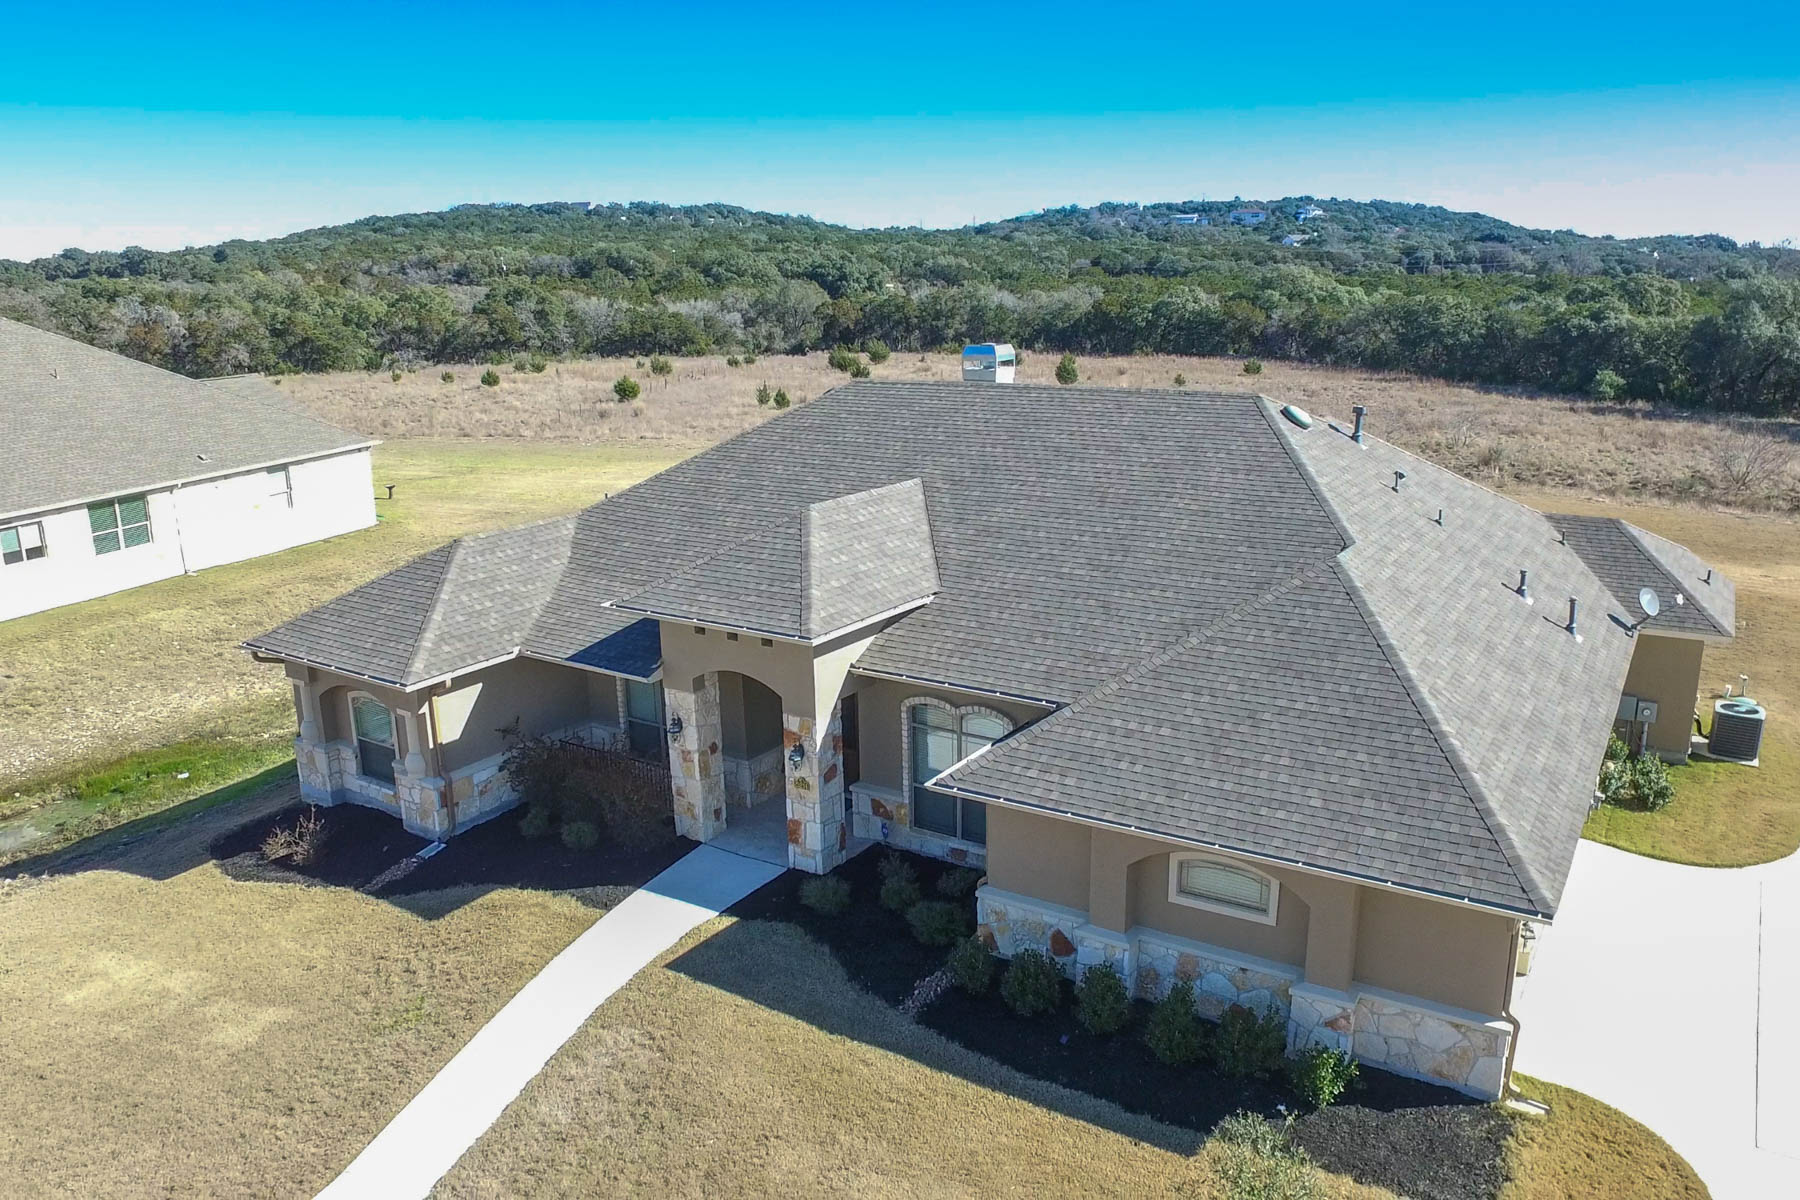 Single Family Home for Sale at Texas Hill Country-Style Home in Boerne 25214 WILD SAGE Boerne, Texas 78006 United States